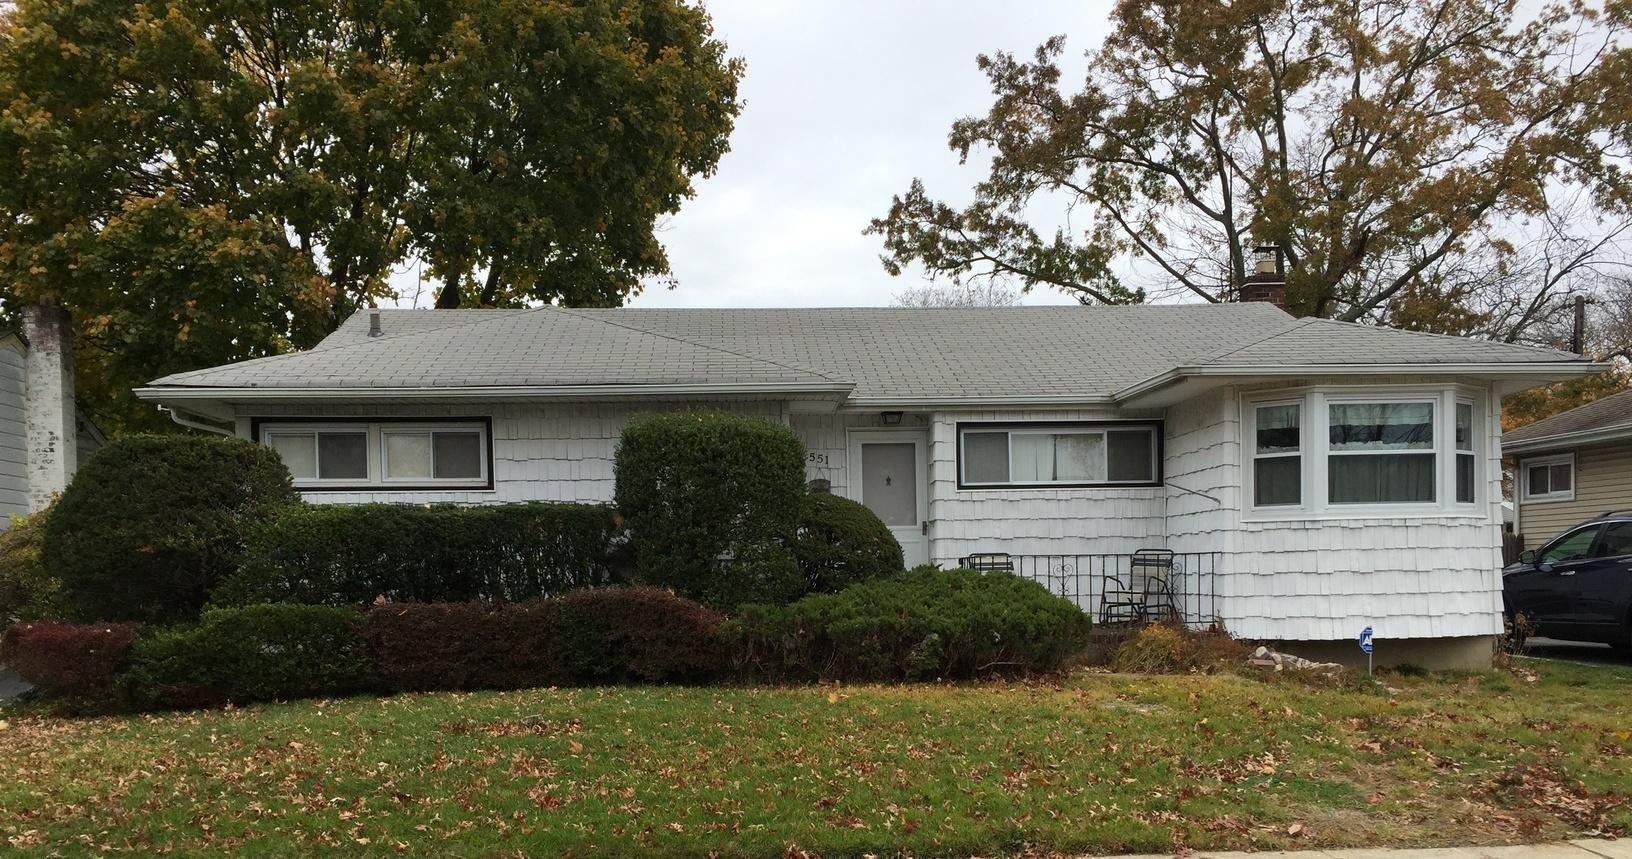 East Meadow Roofing & Siding Replacement - Before Photo